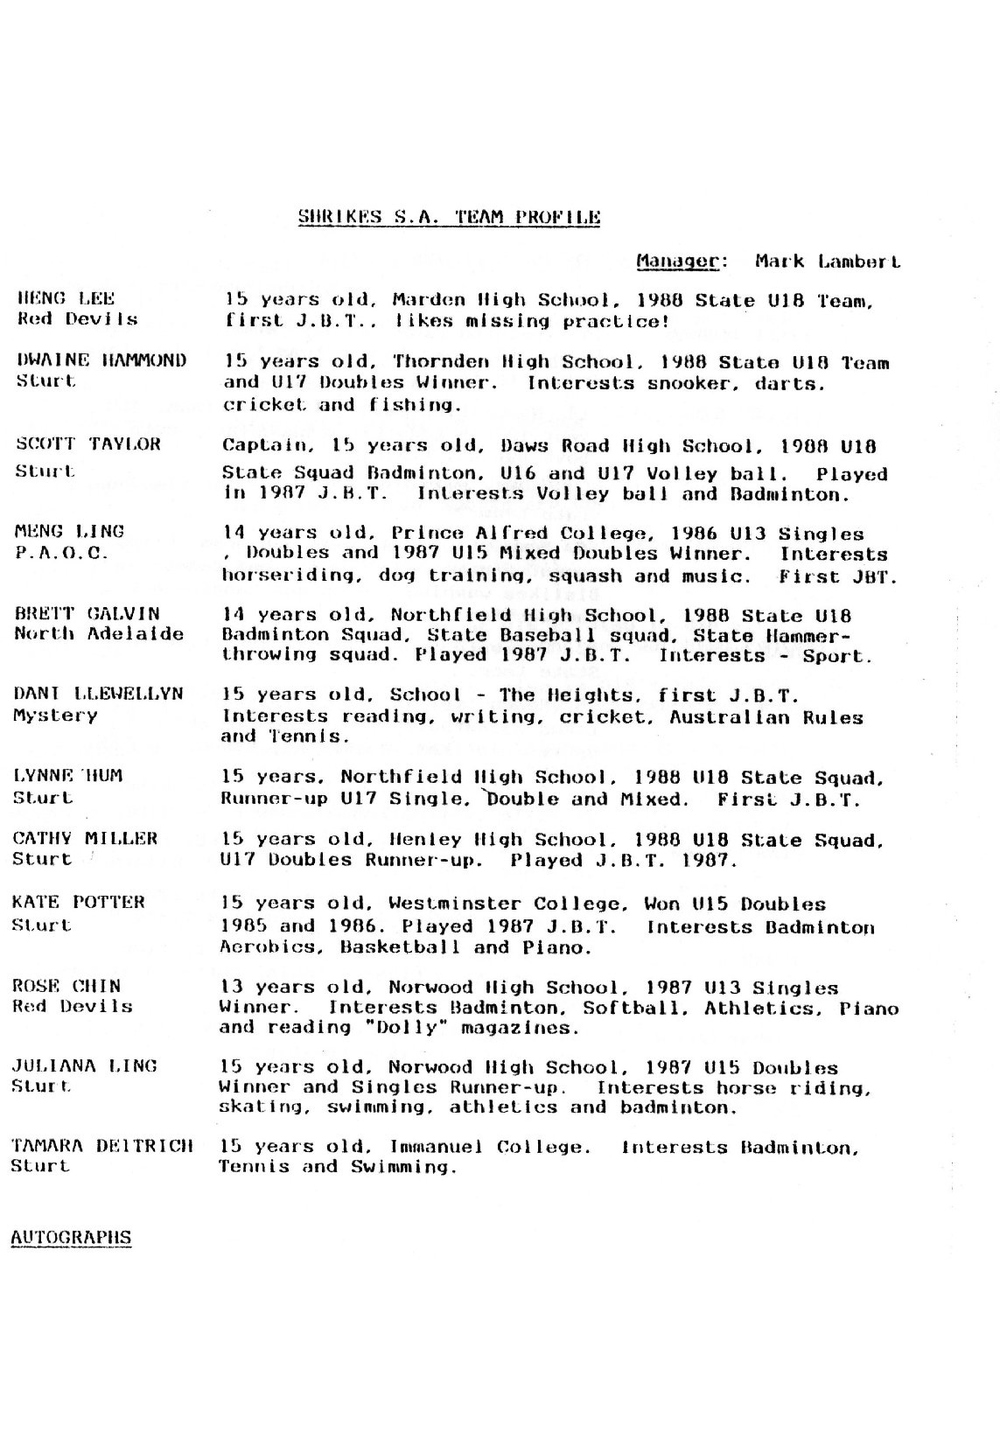 1988 June Bevan Trophy - Sturt team - Shrikes S.A. player profiles